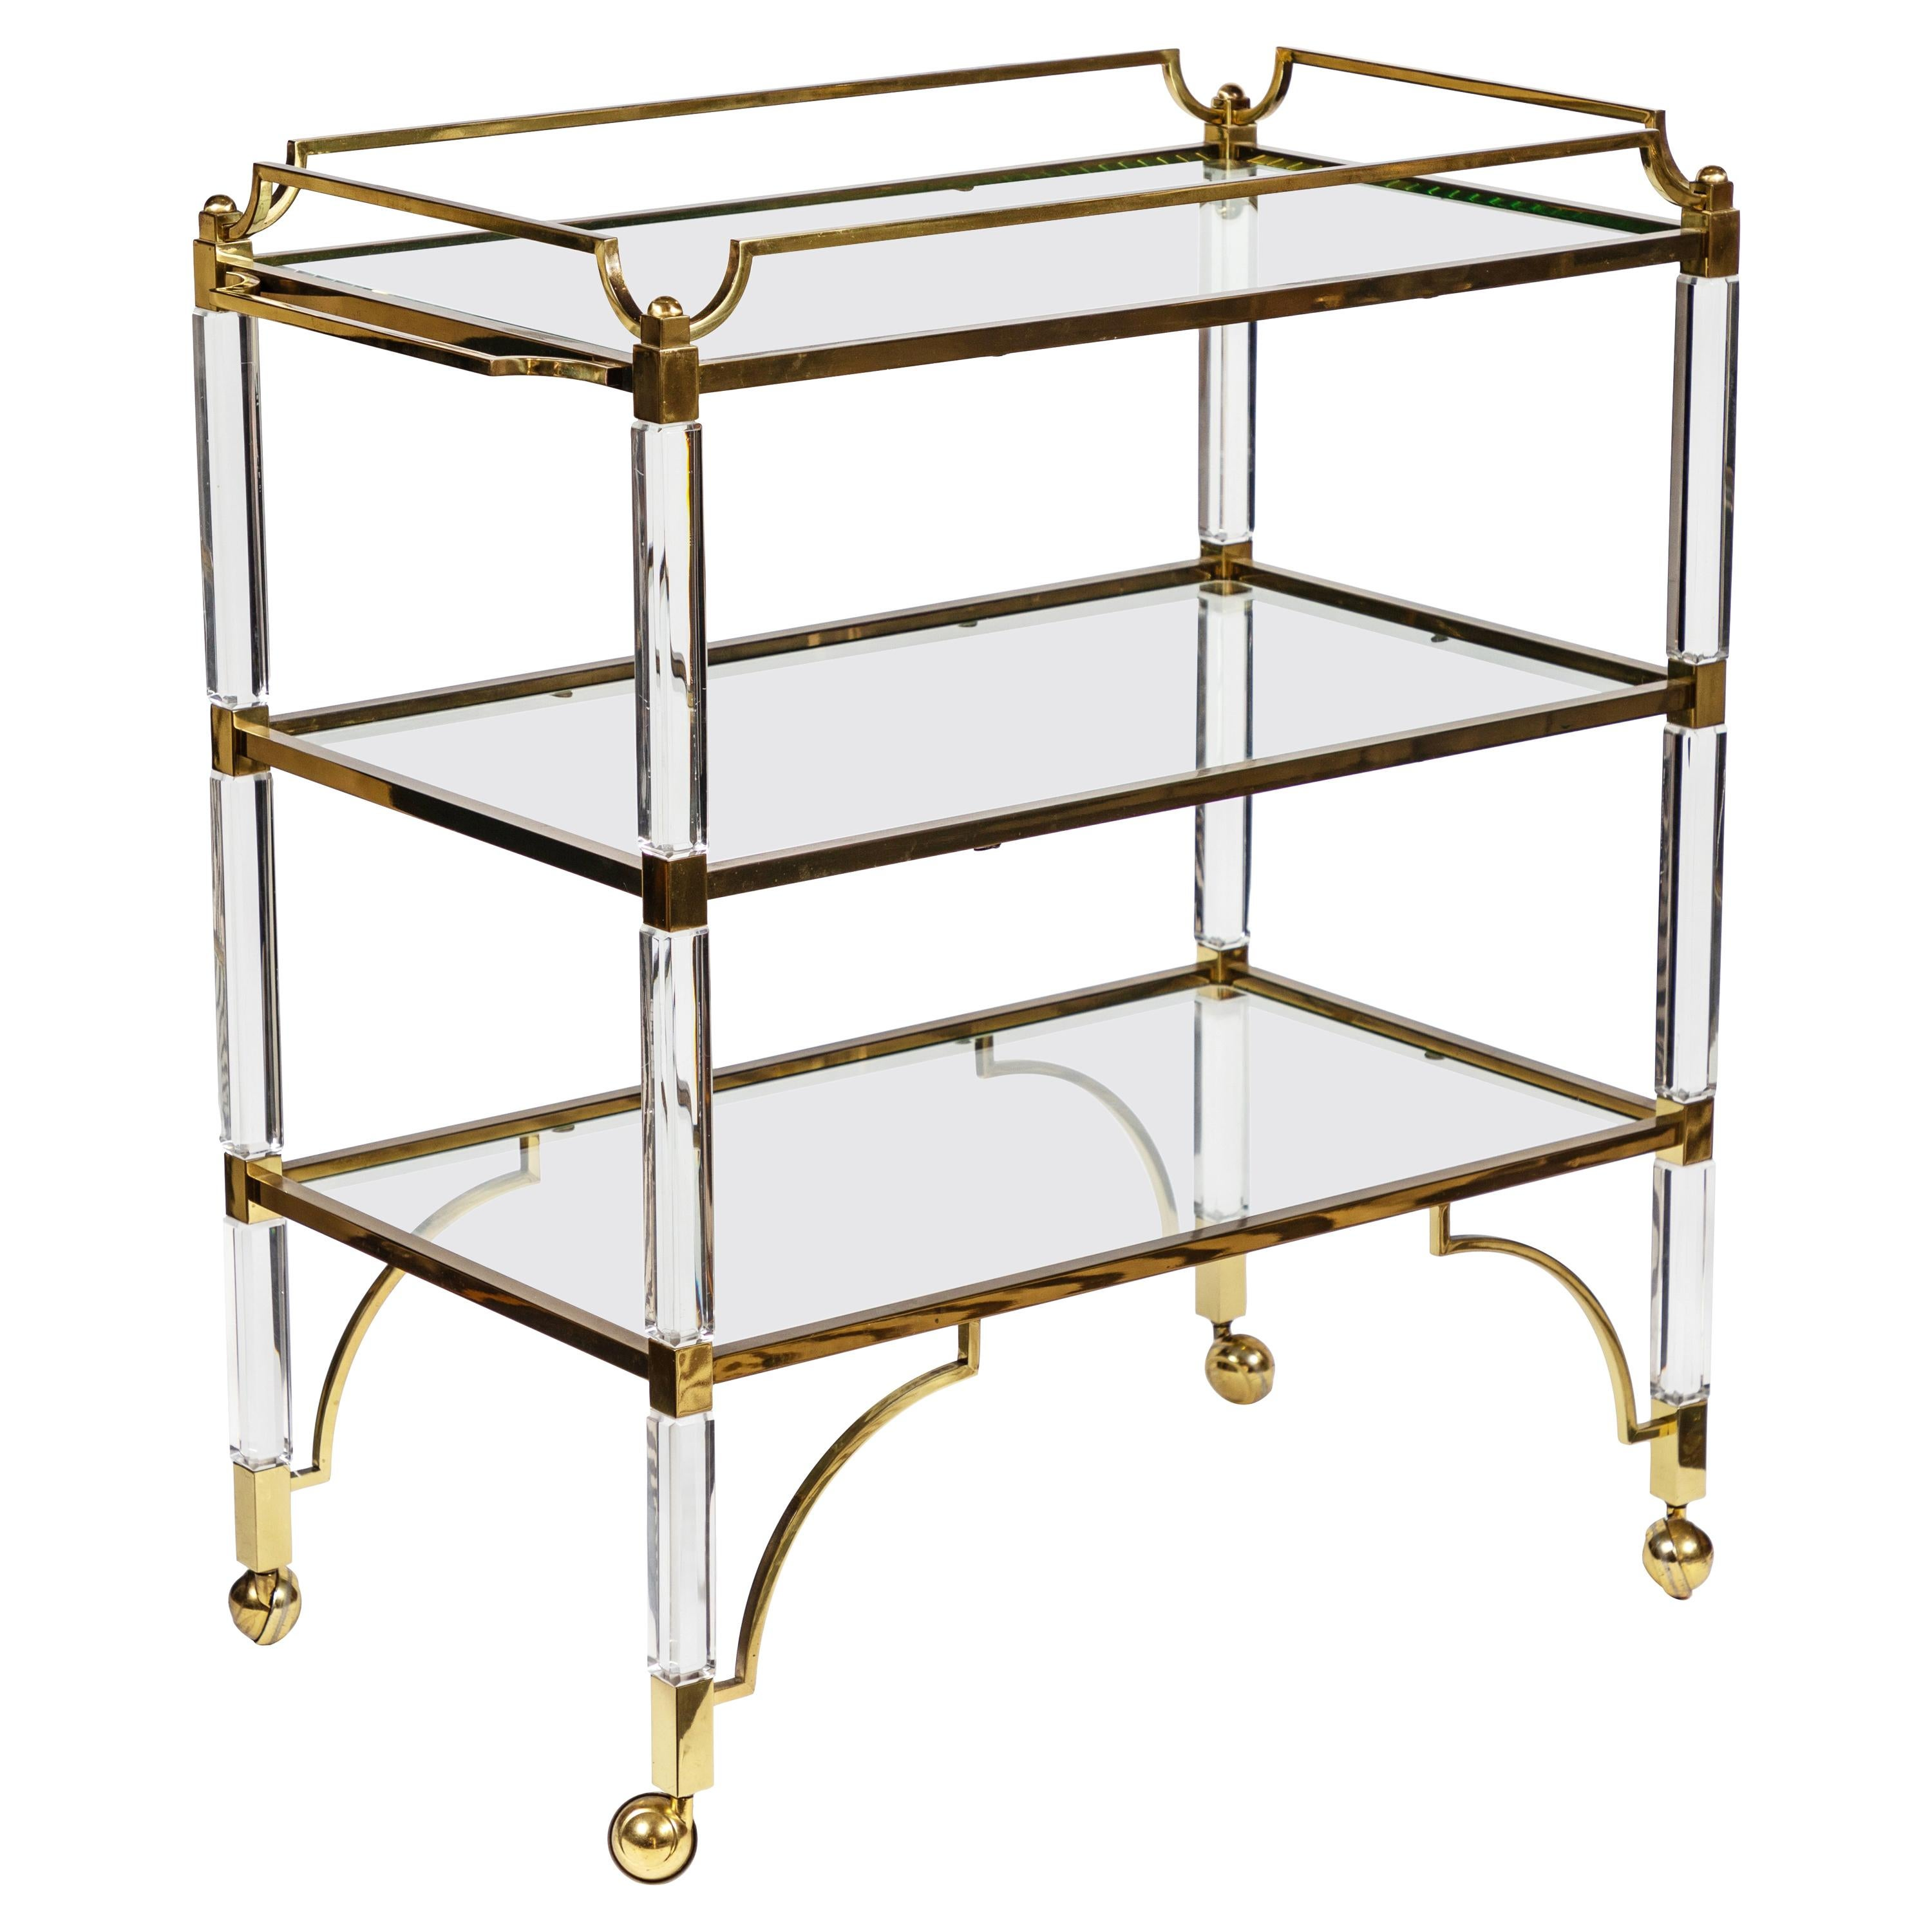 1980s Lucite and Brass Cart